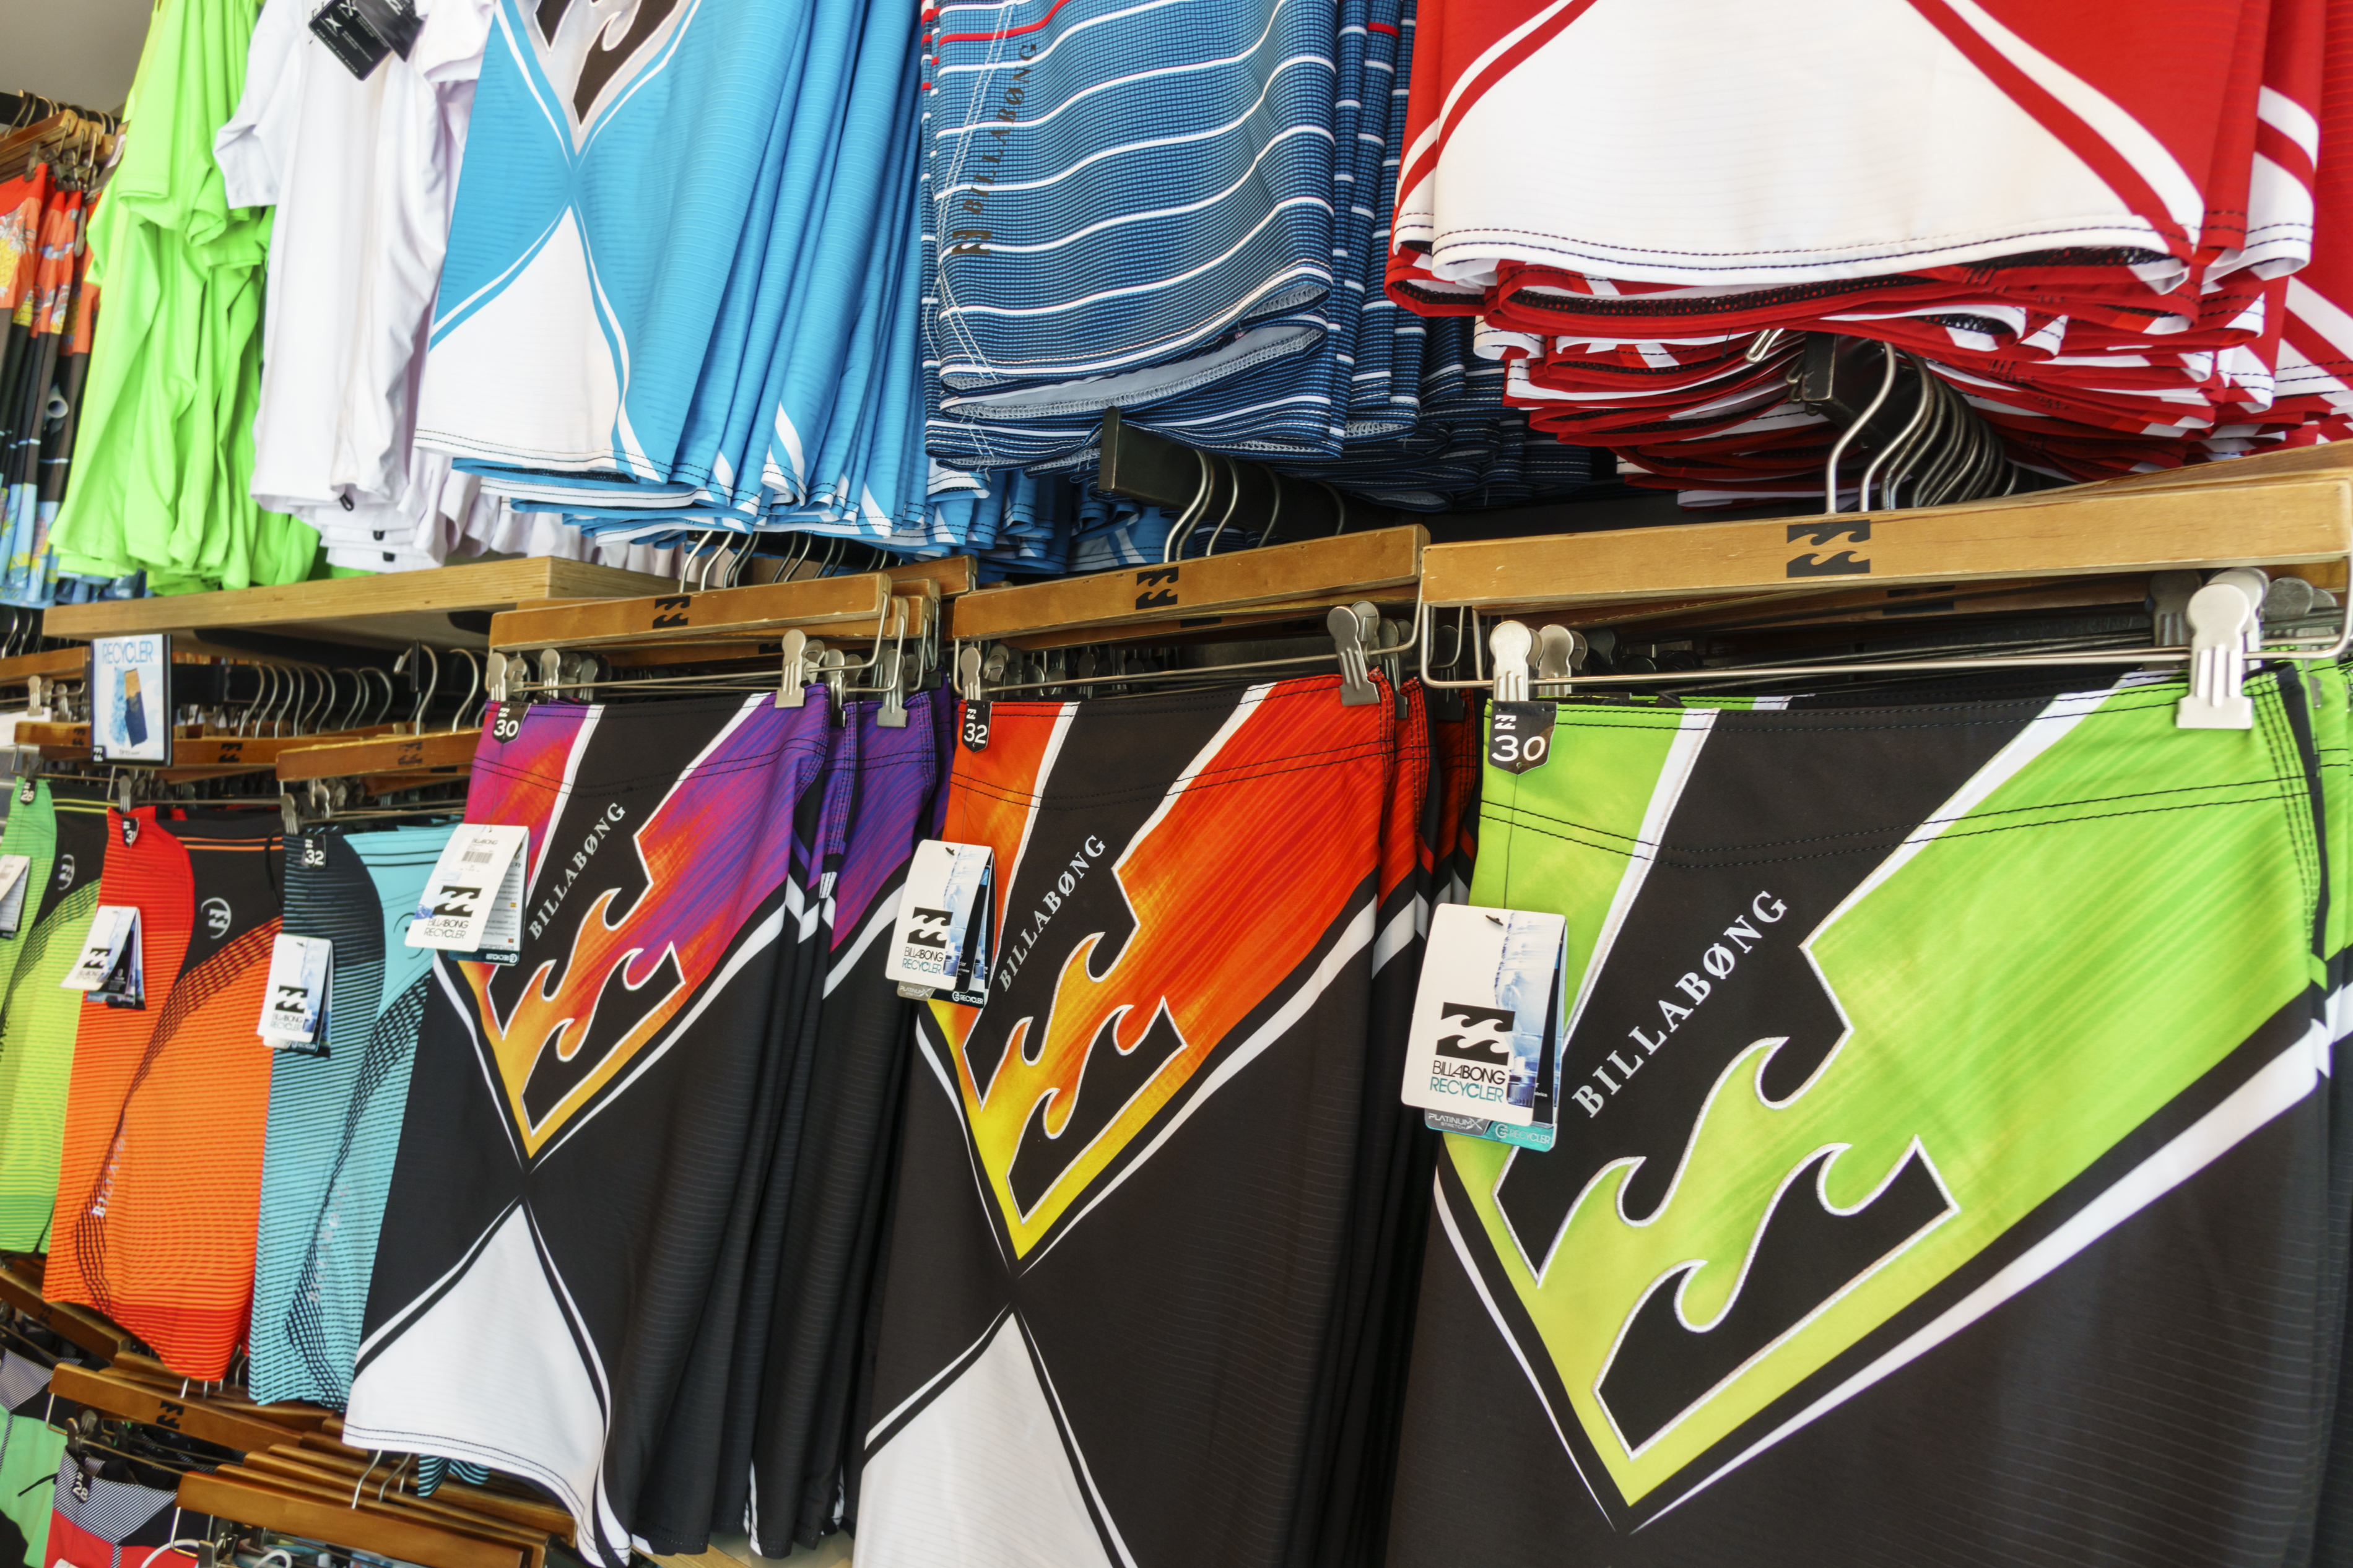 Swimming trunks for sale at a store on Kalakaua Avenue.